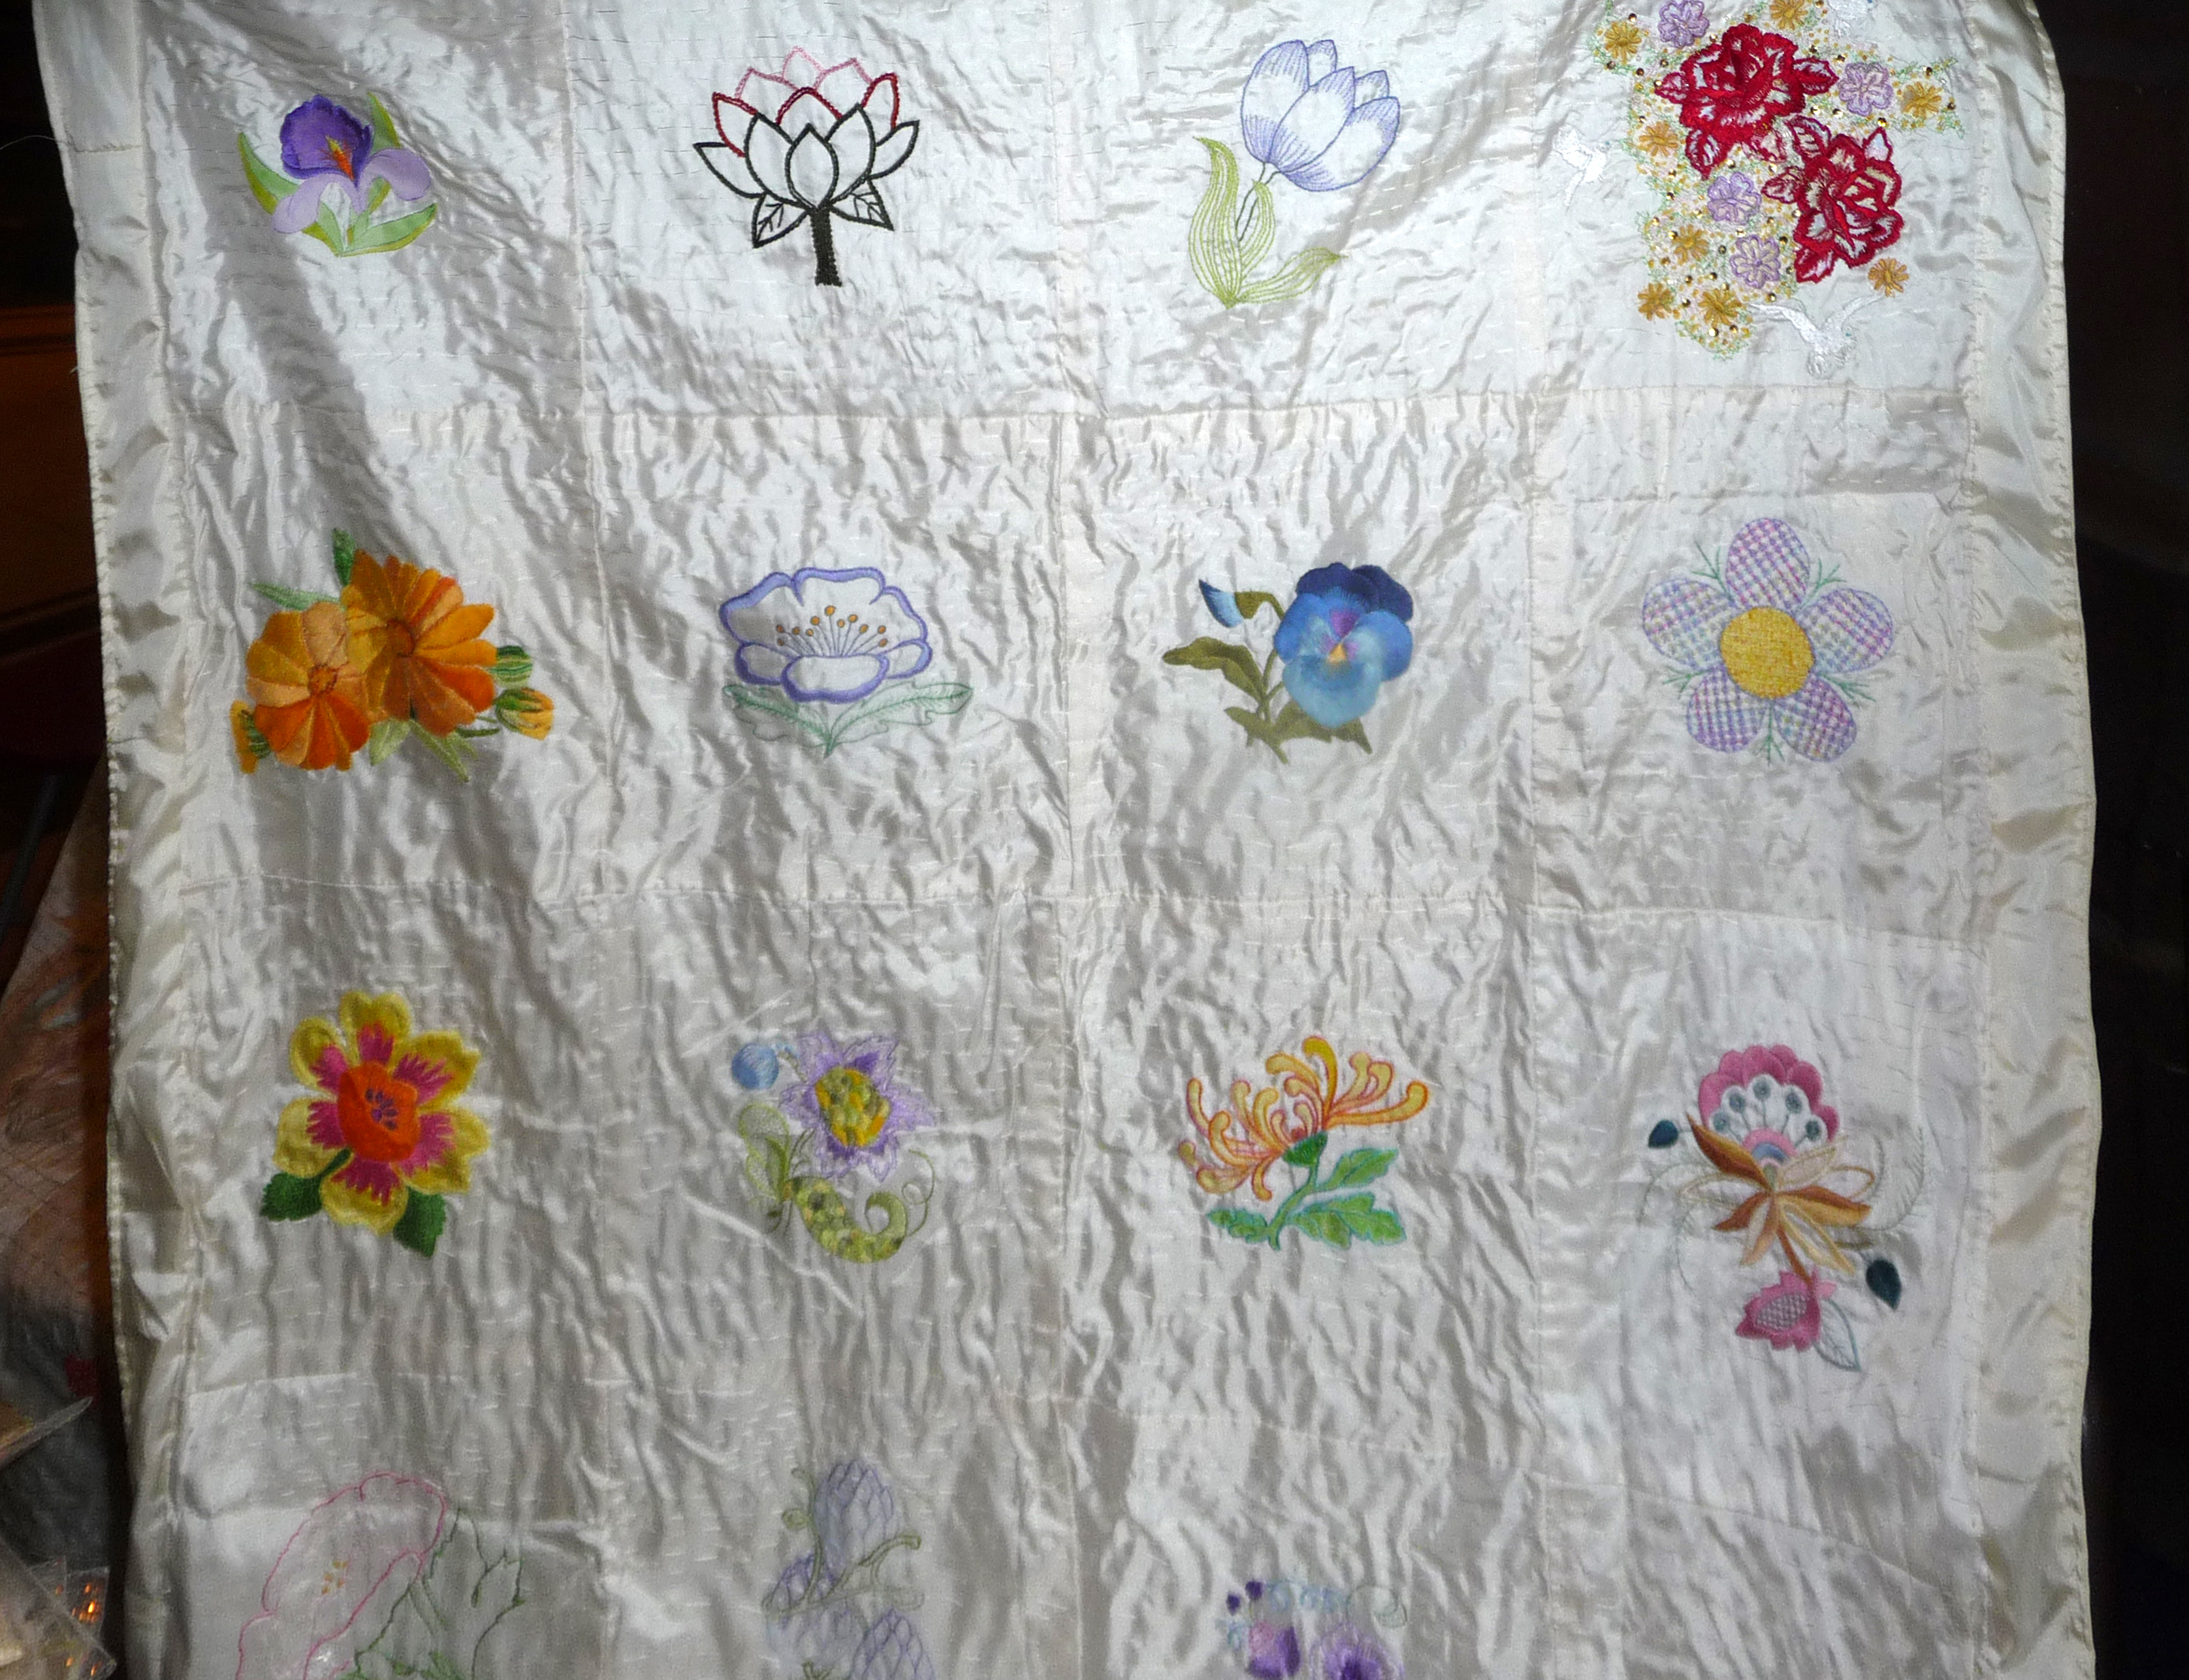 embroidered flower squares made by Altrincham EG, kantha quilting by women of Sreepur Village